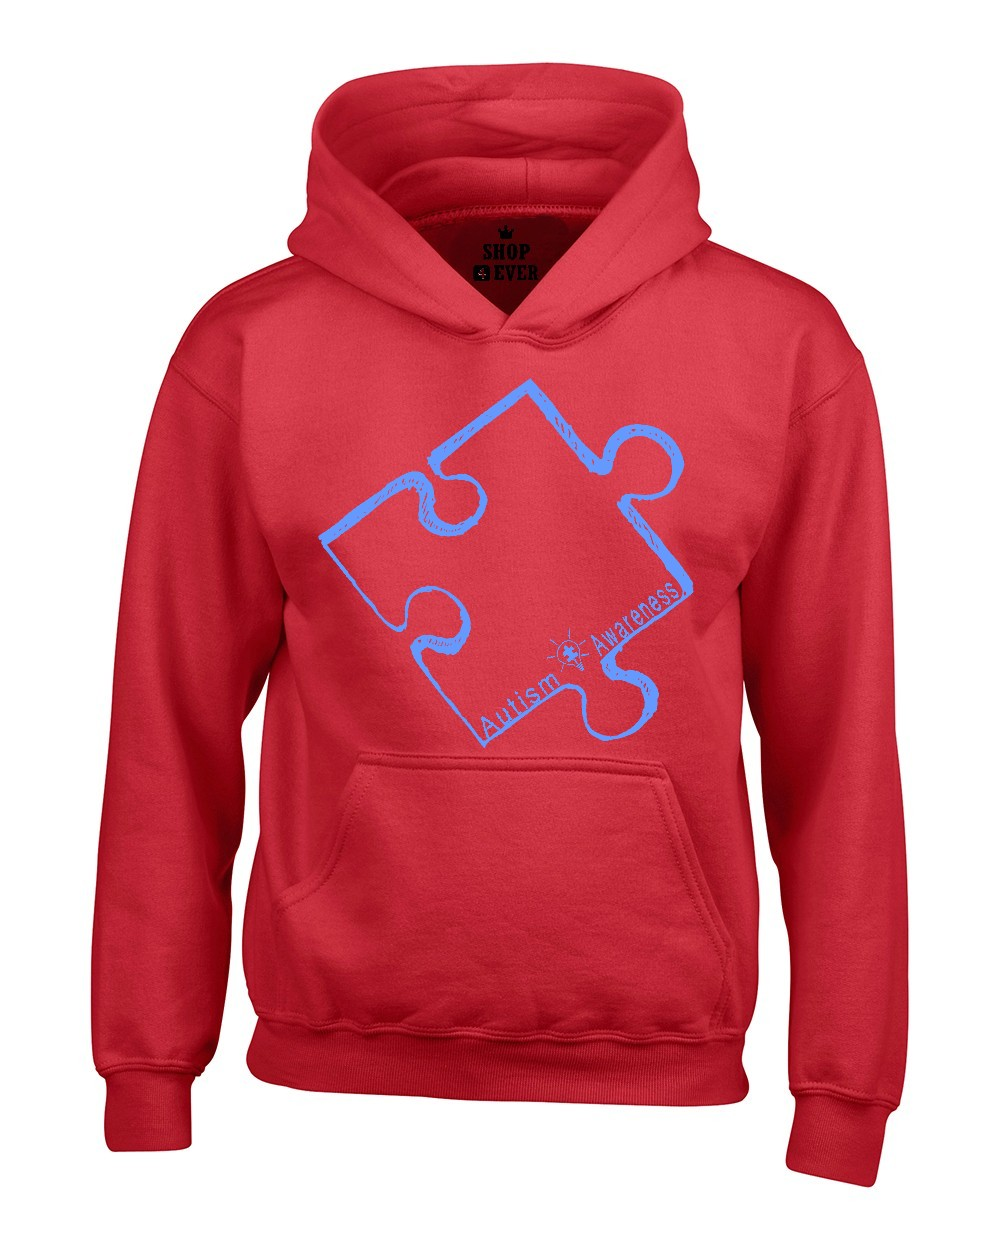 Shop4Ever Men's Blue Puzzle Piece Autism Awareness Hooded Sweatshirt Hoodie